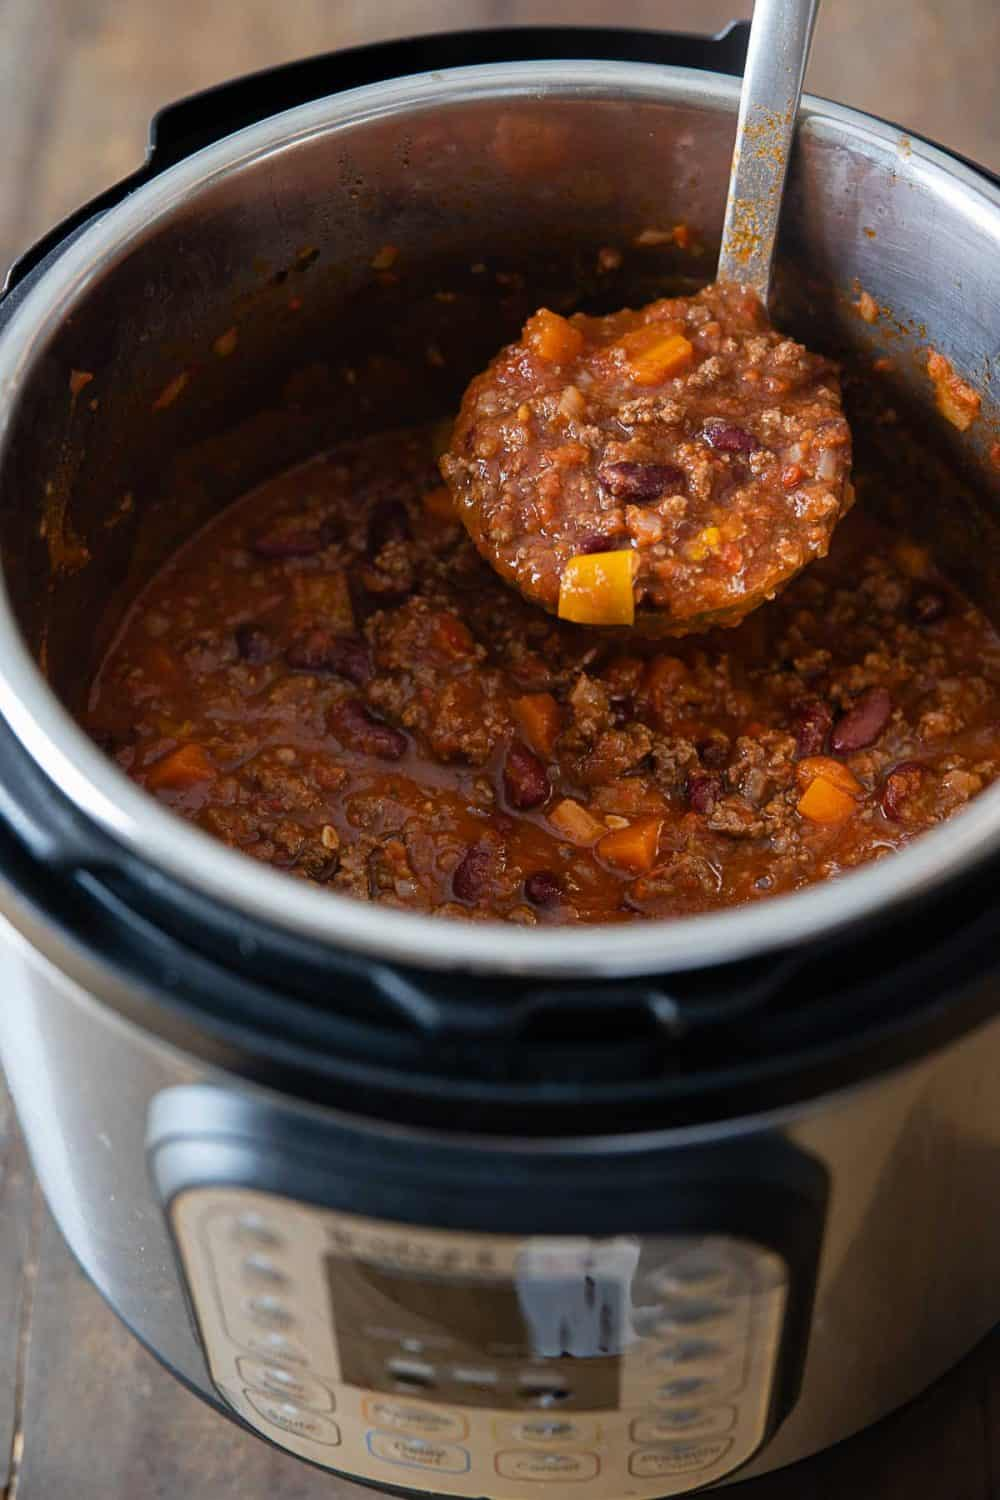 Chili con carne in the Instant Pot.